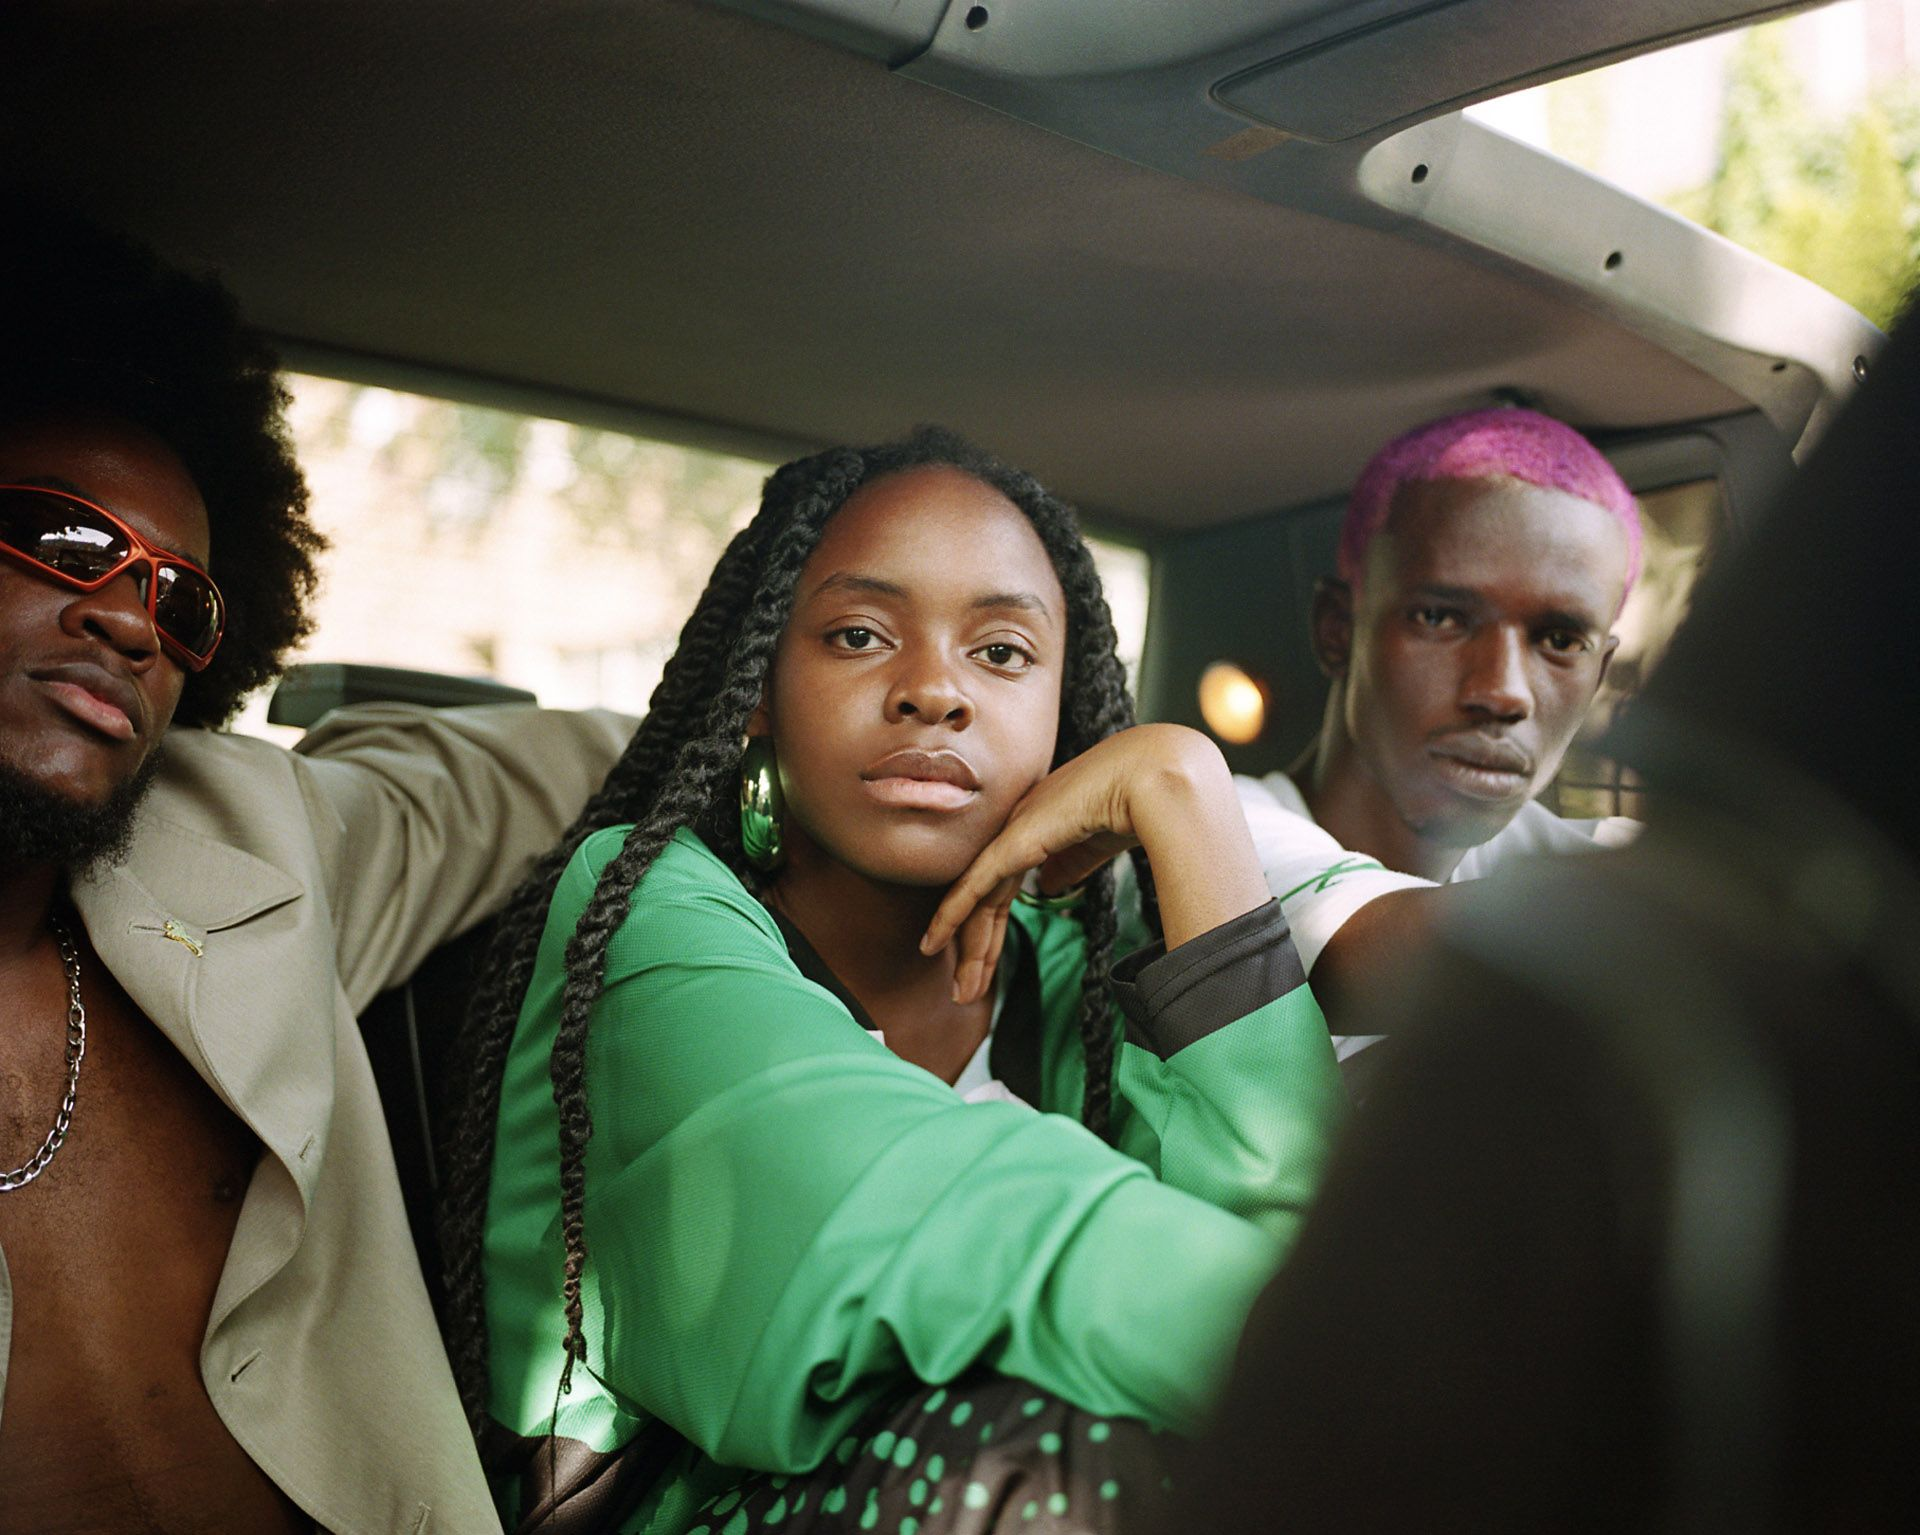 black models in car by Oumayma B Tanfous for Moonshine international sapologie with Nataal